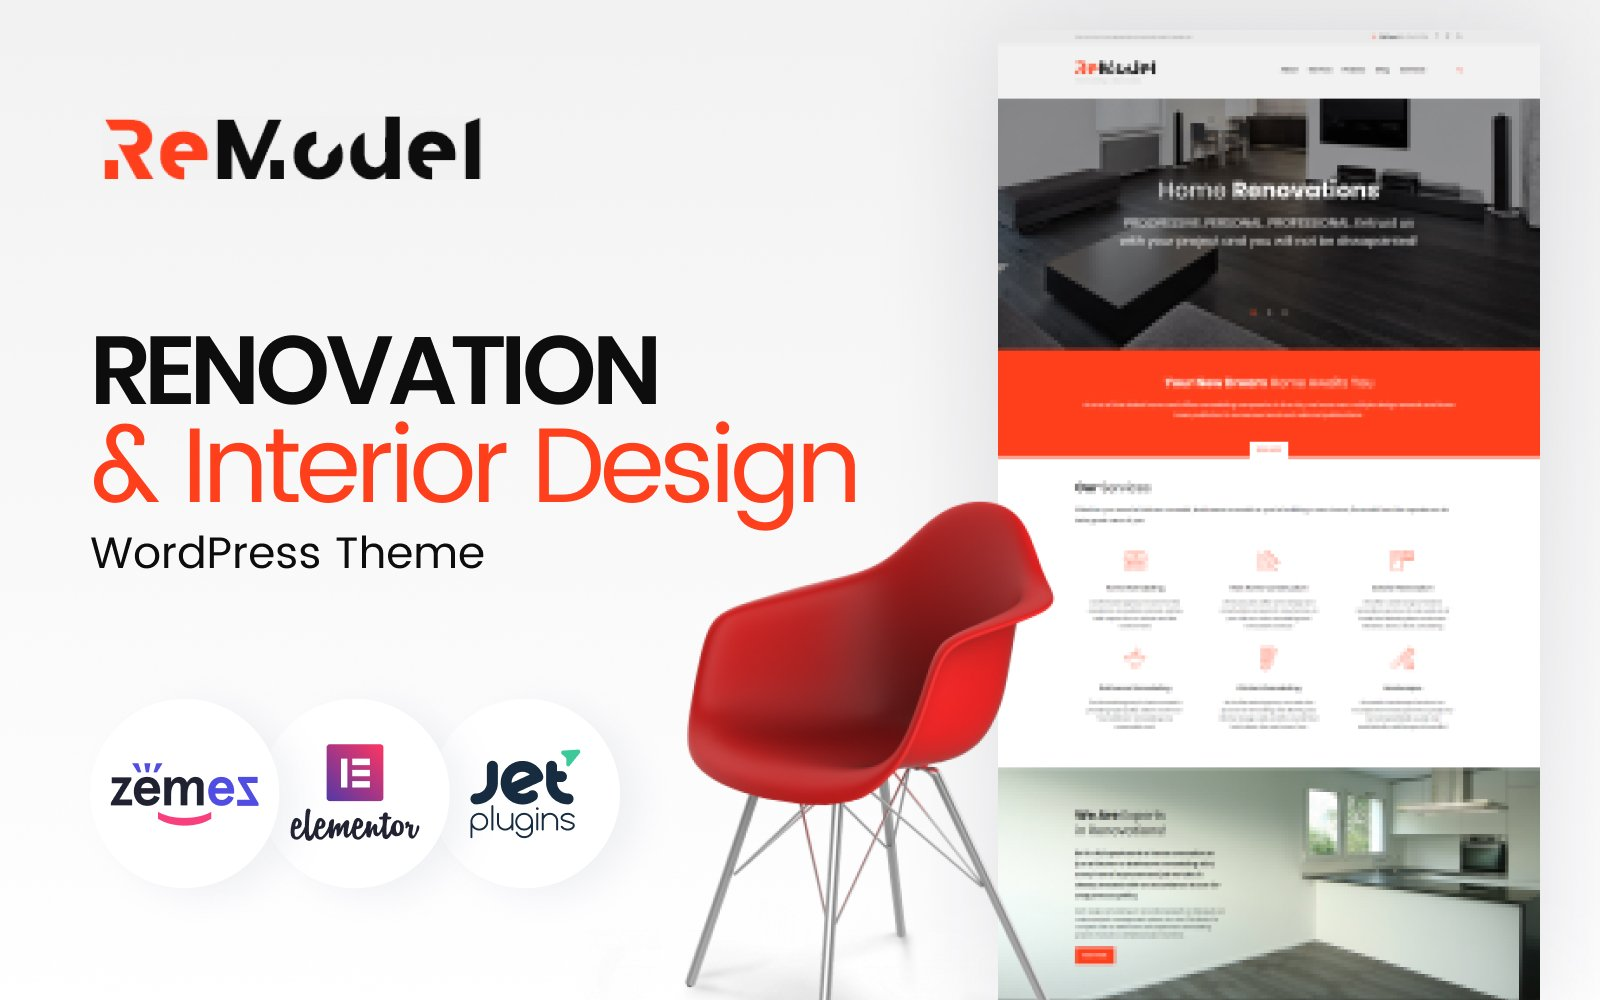 Remodel - Renovation & Interior Design WordPress Theme